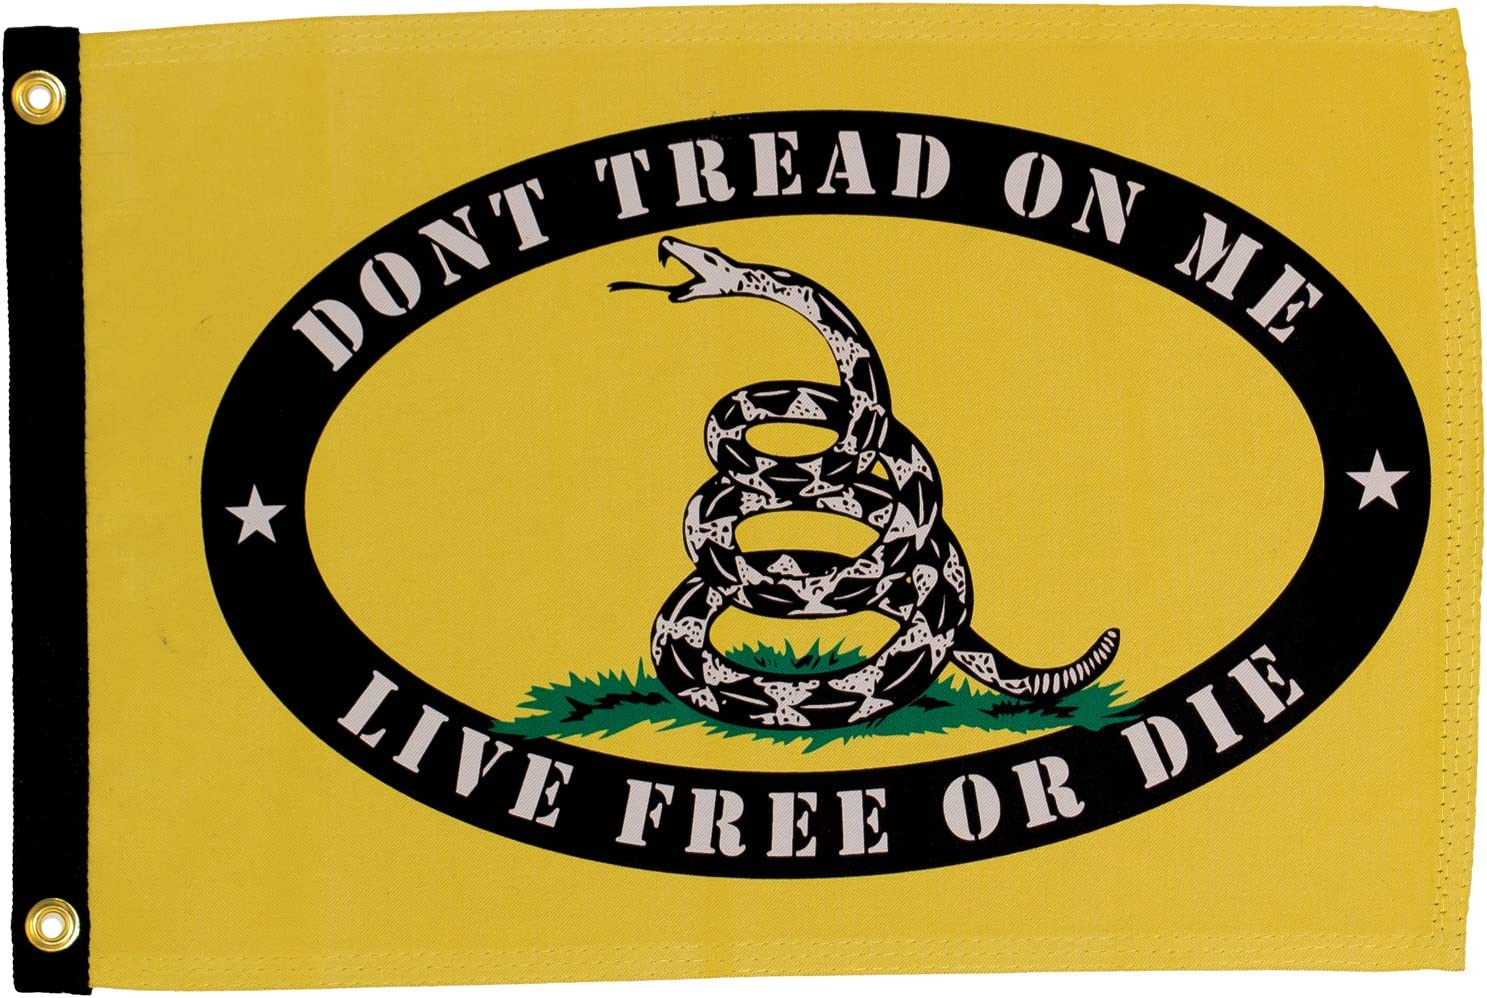 Amazon.com : In the Breeze Live Free or Die Lustre Grommeted Boat Flag, 12  by 18-Inch : Garden & Outdoor